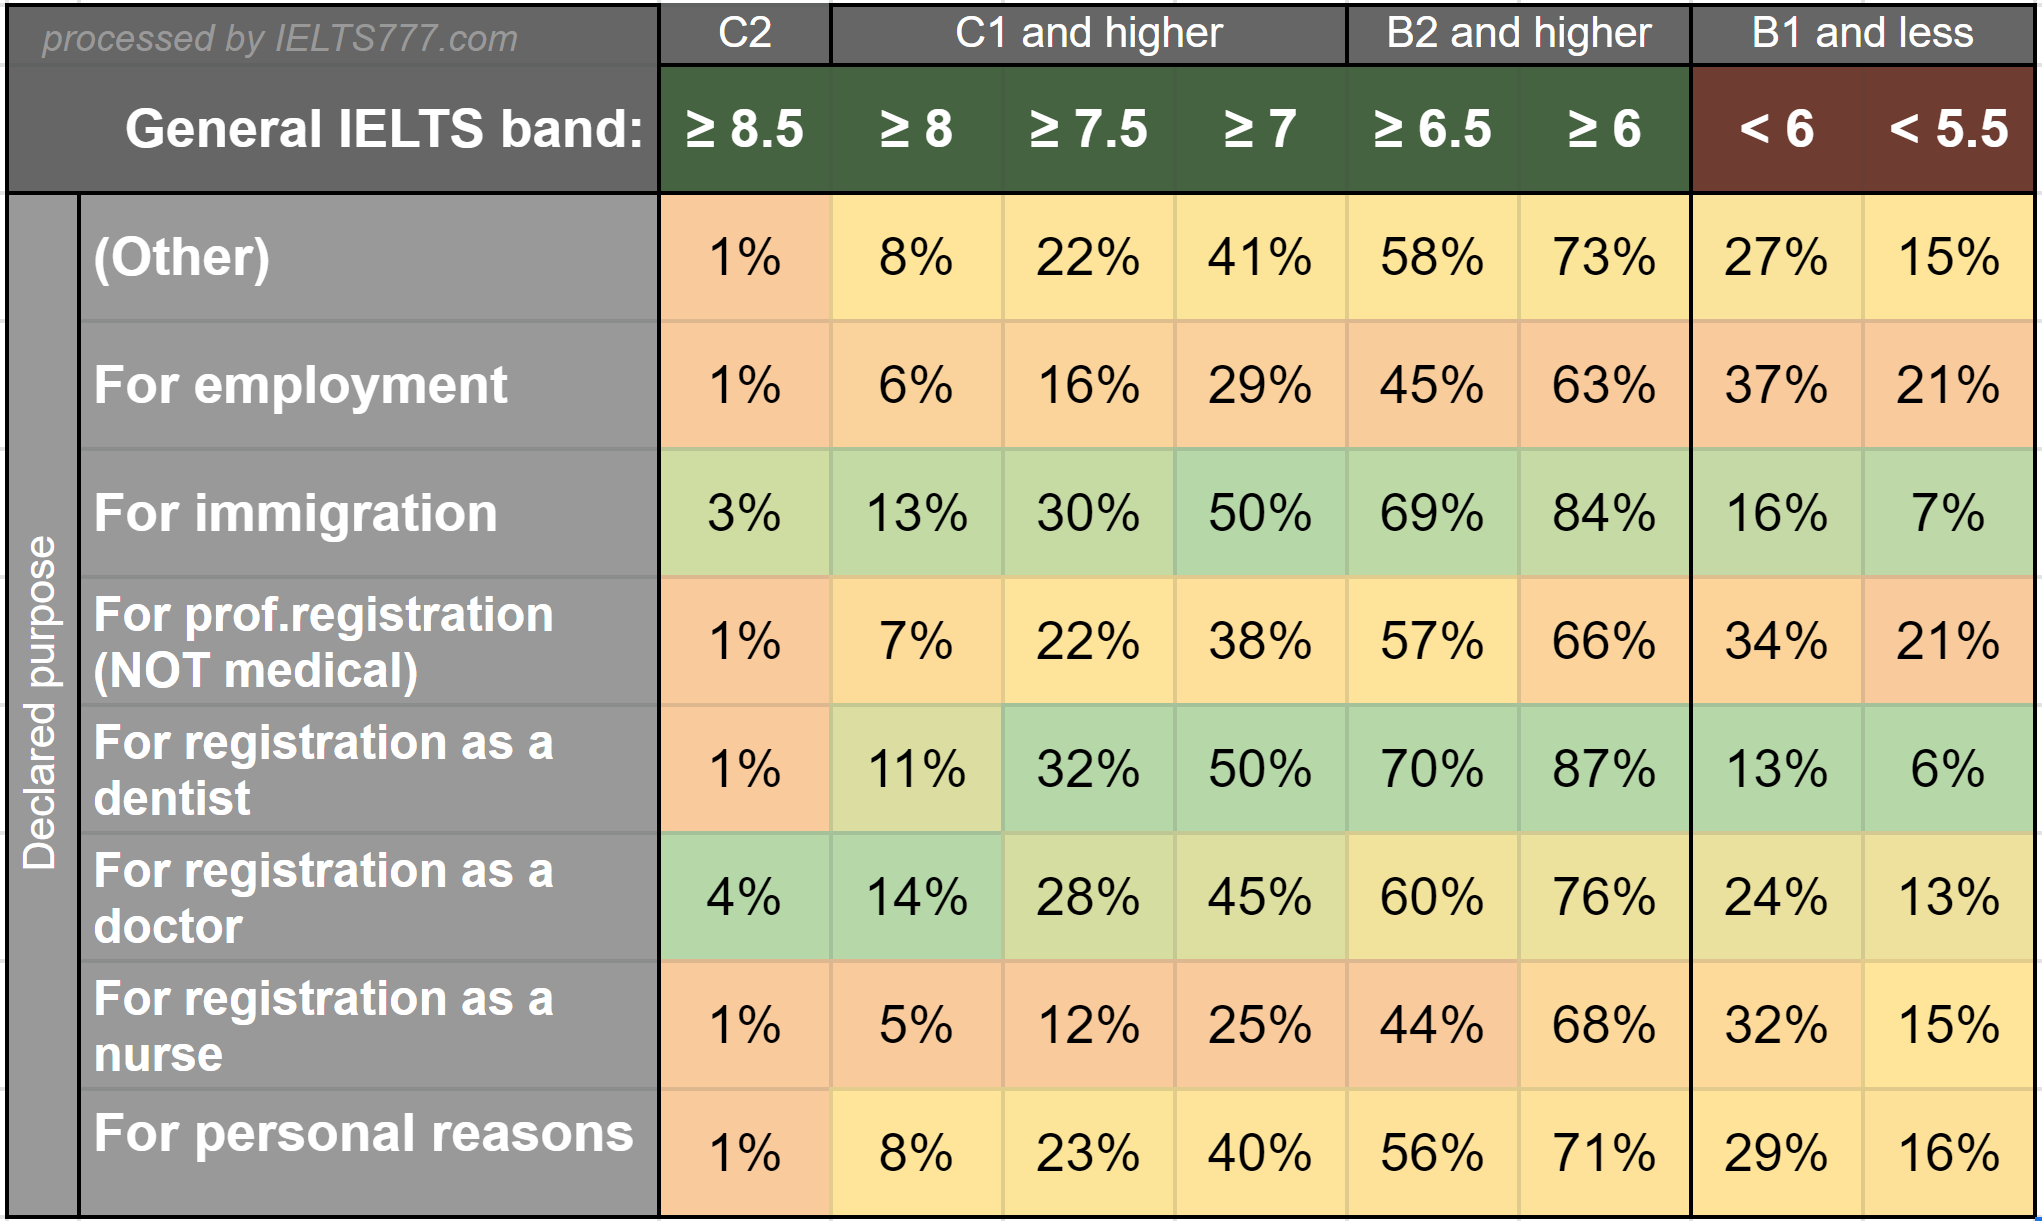 General IELTS score statistics: Band distribution by declared purpose